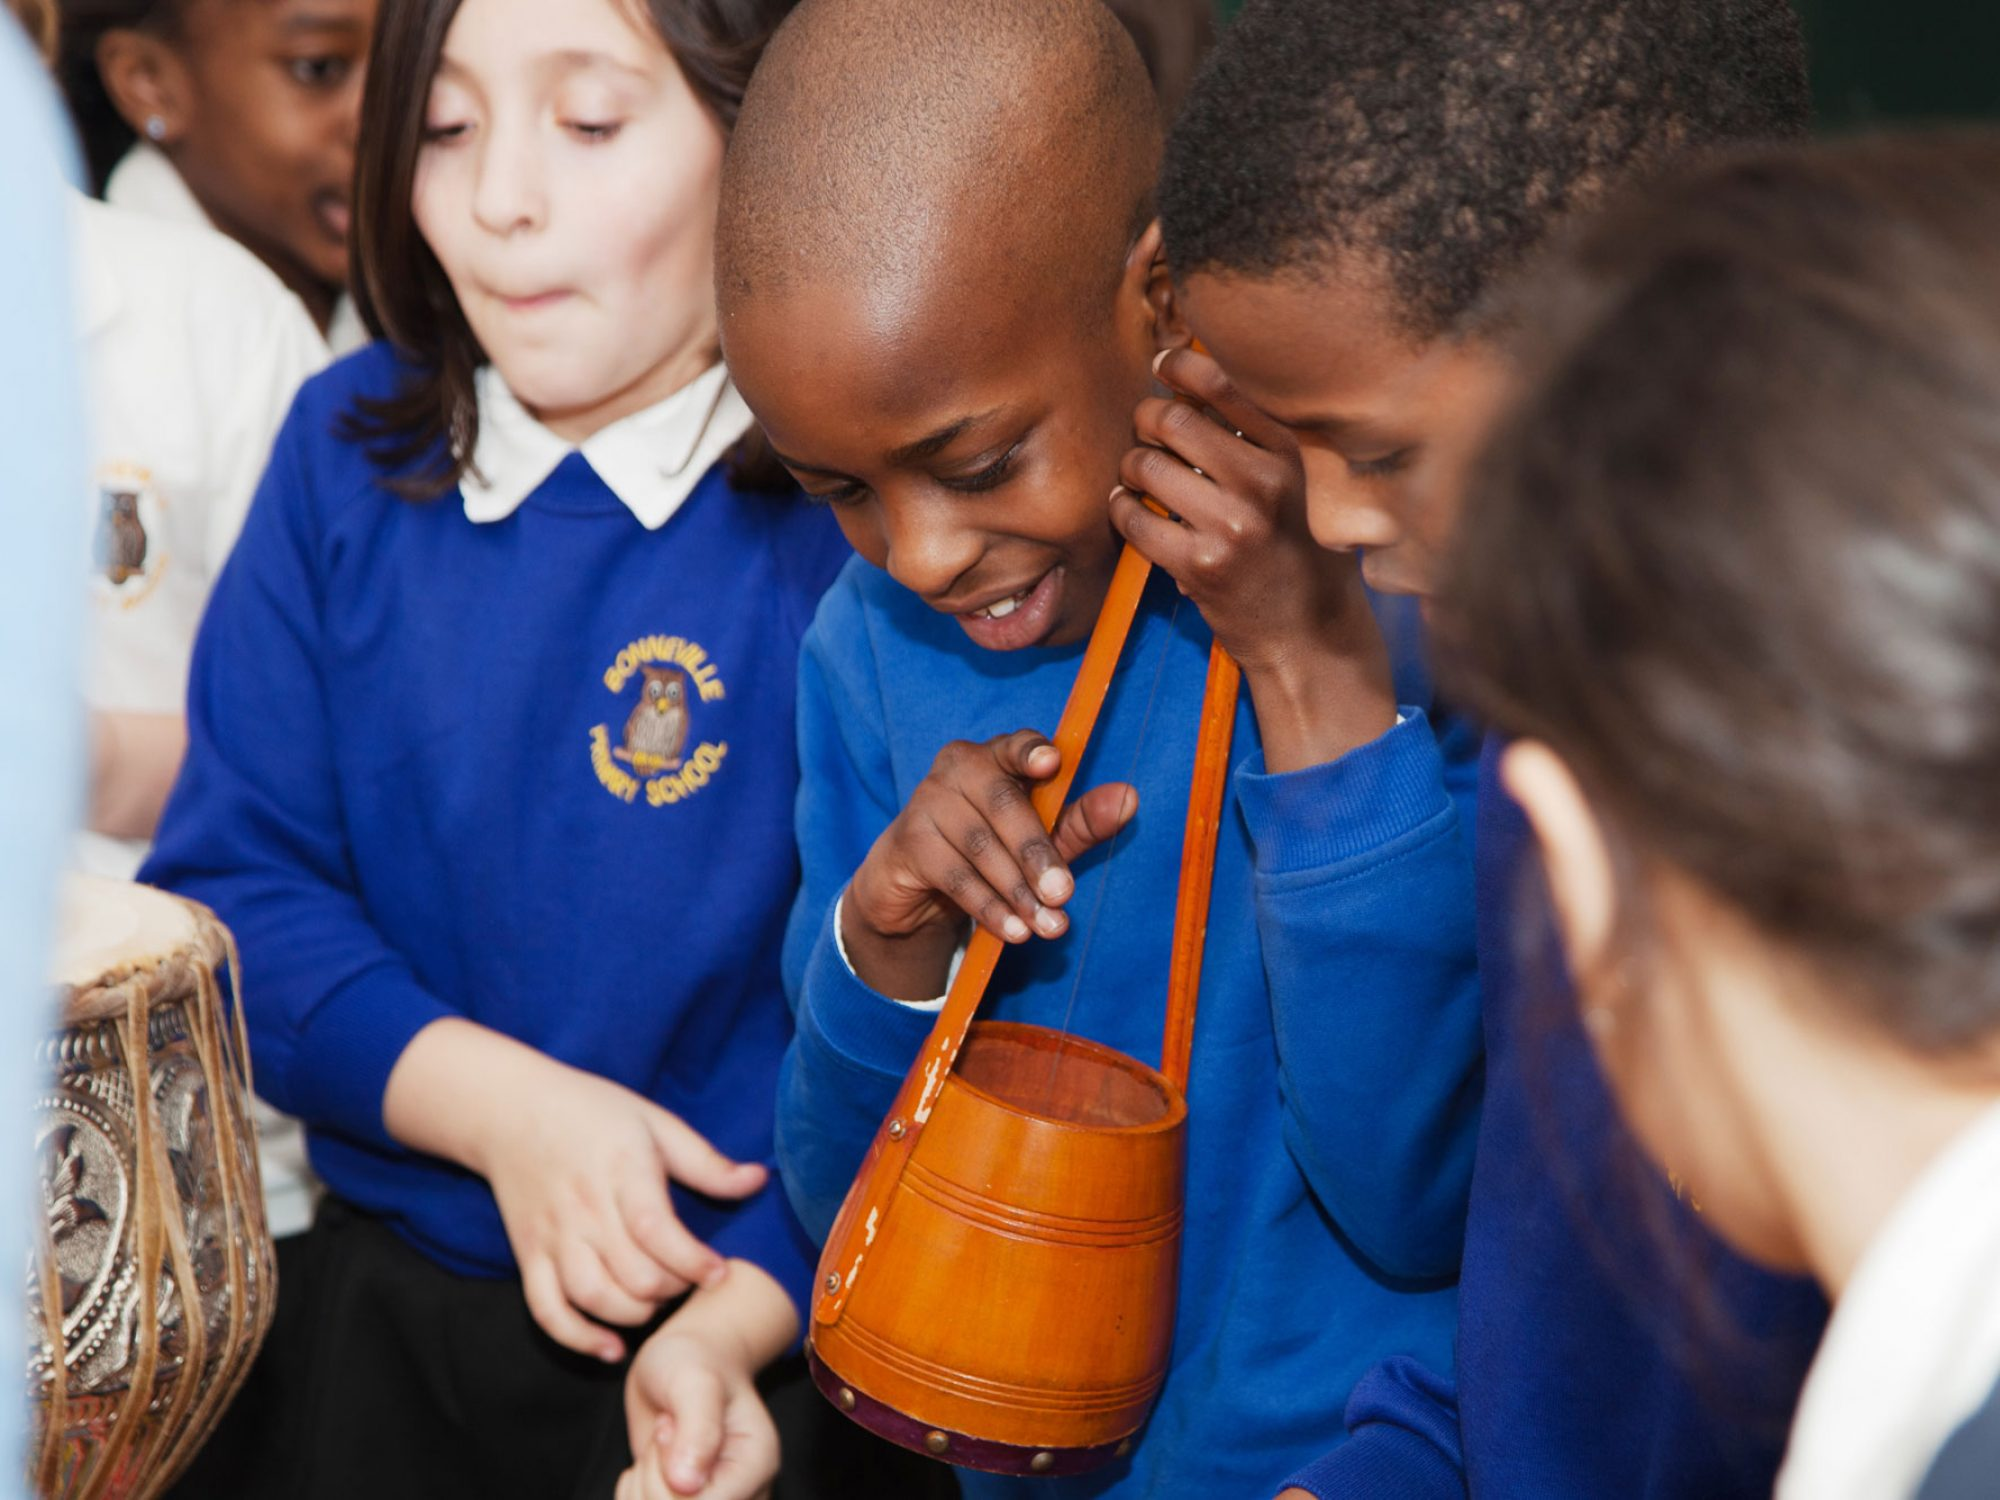 Four children are grouped around some instruments wearing blue jumpers. One child is holding a stringed drum shaped instrument and is smiling. There is a drum just seen in front of them.